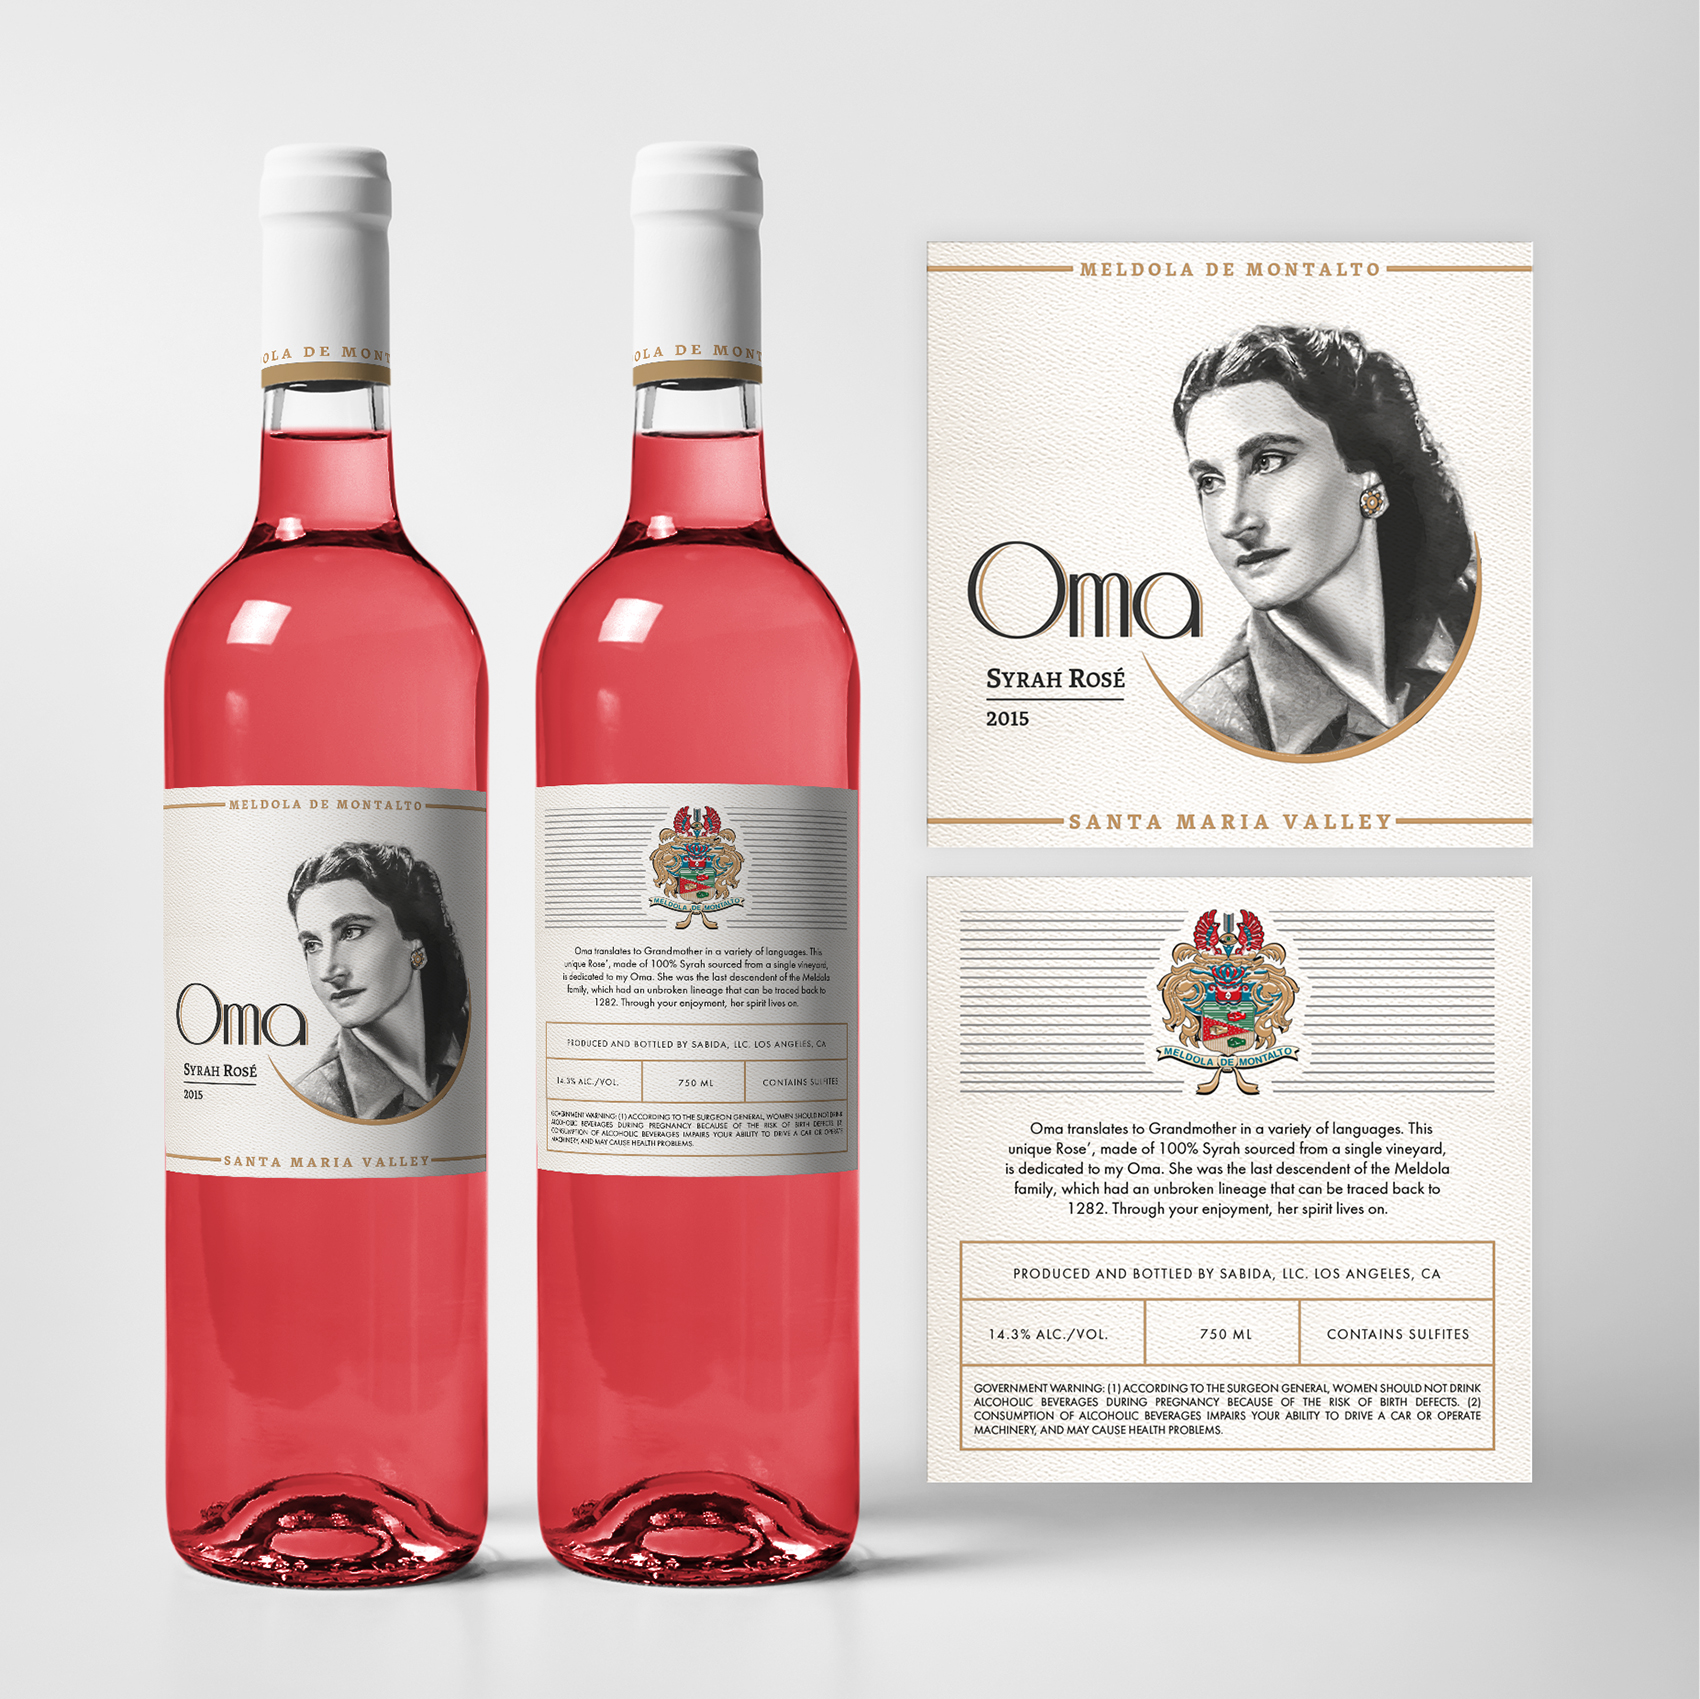 Wine bottle label by Anastasiia TolTol for OMA Wine